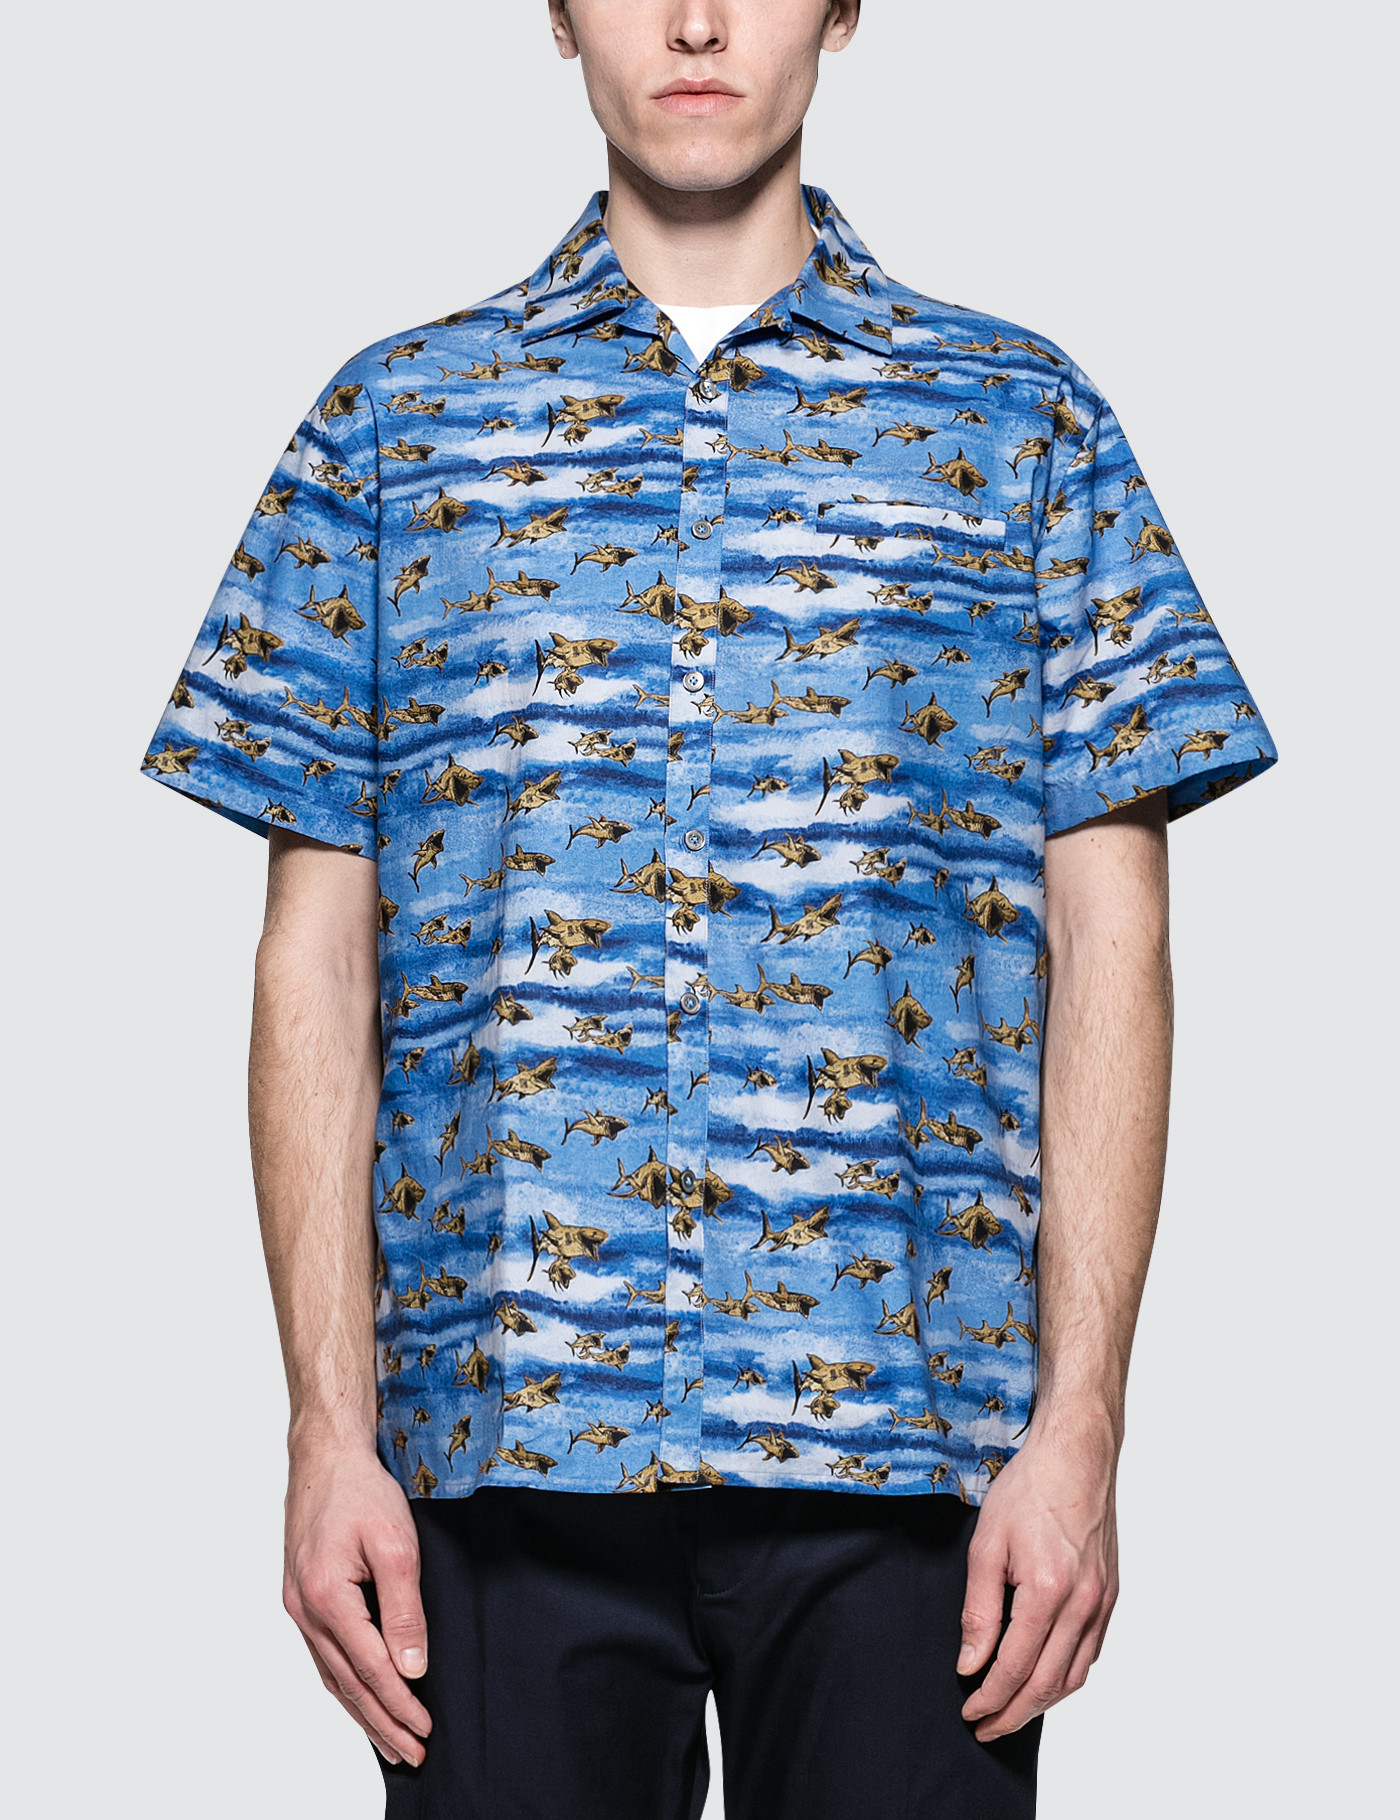 Bowling S/S Shirt with Open Collar